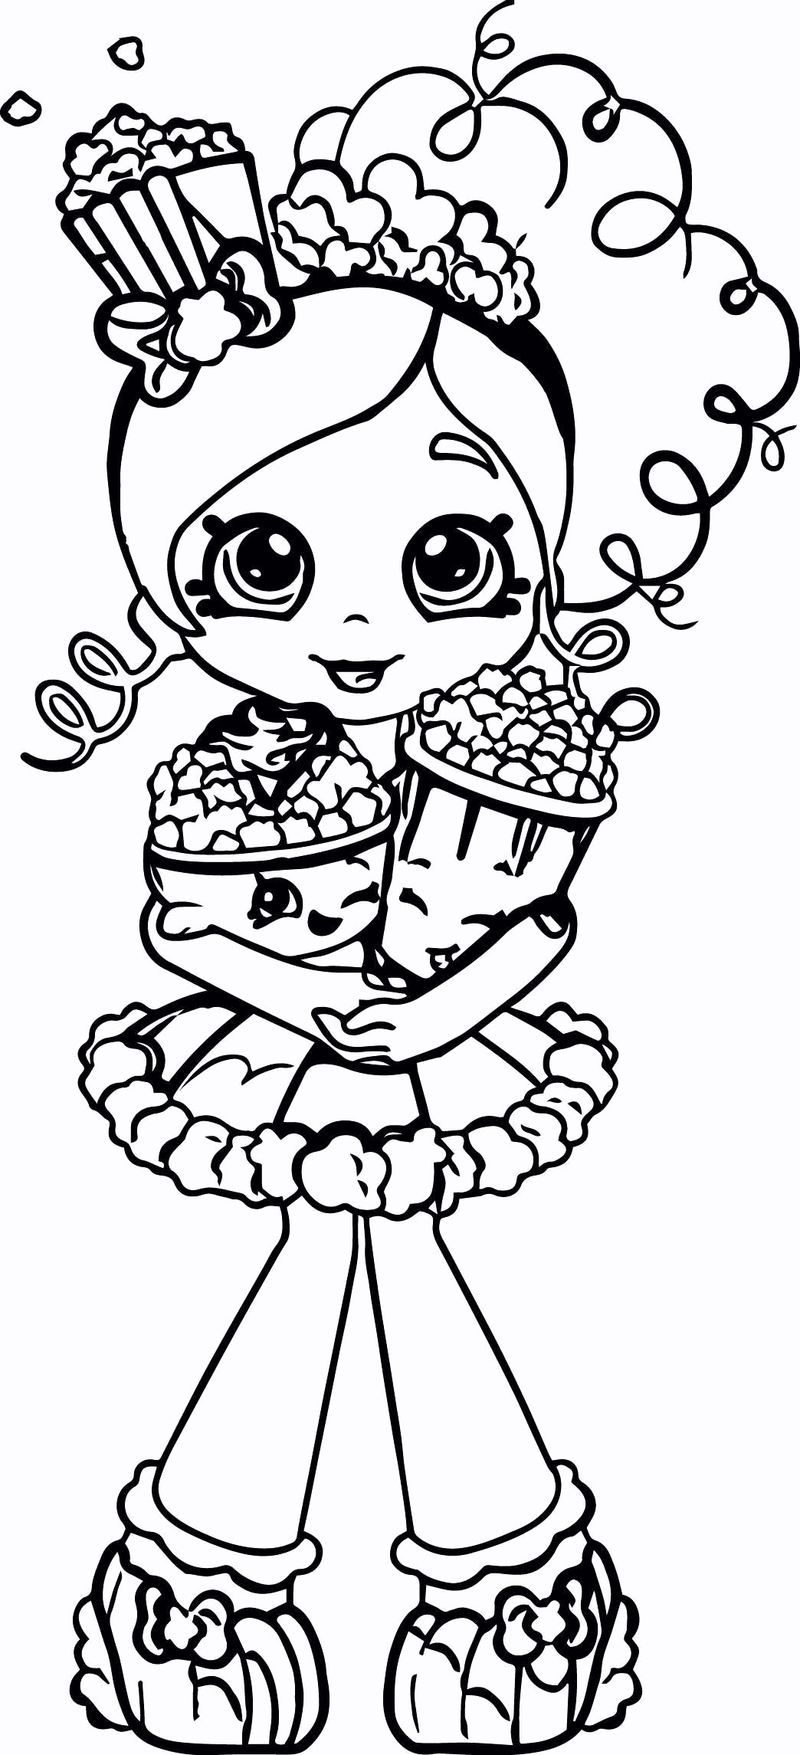 shopkin coloring pages that you can print. Shopkins Wild